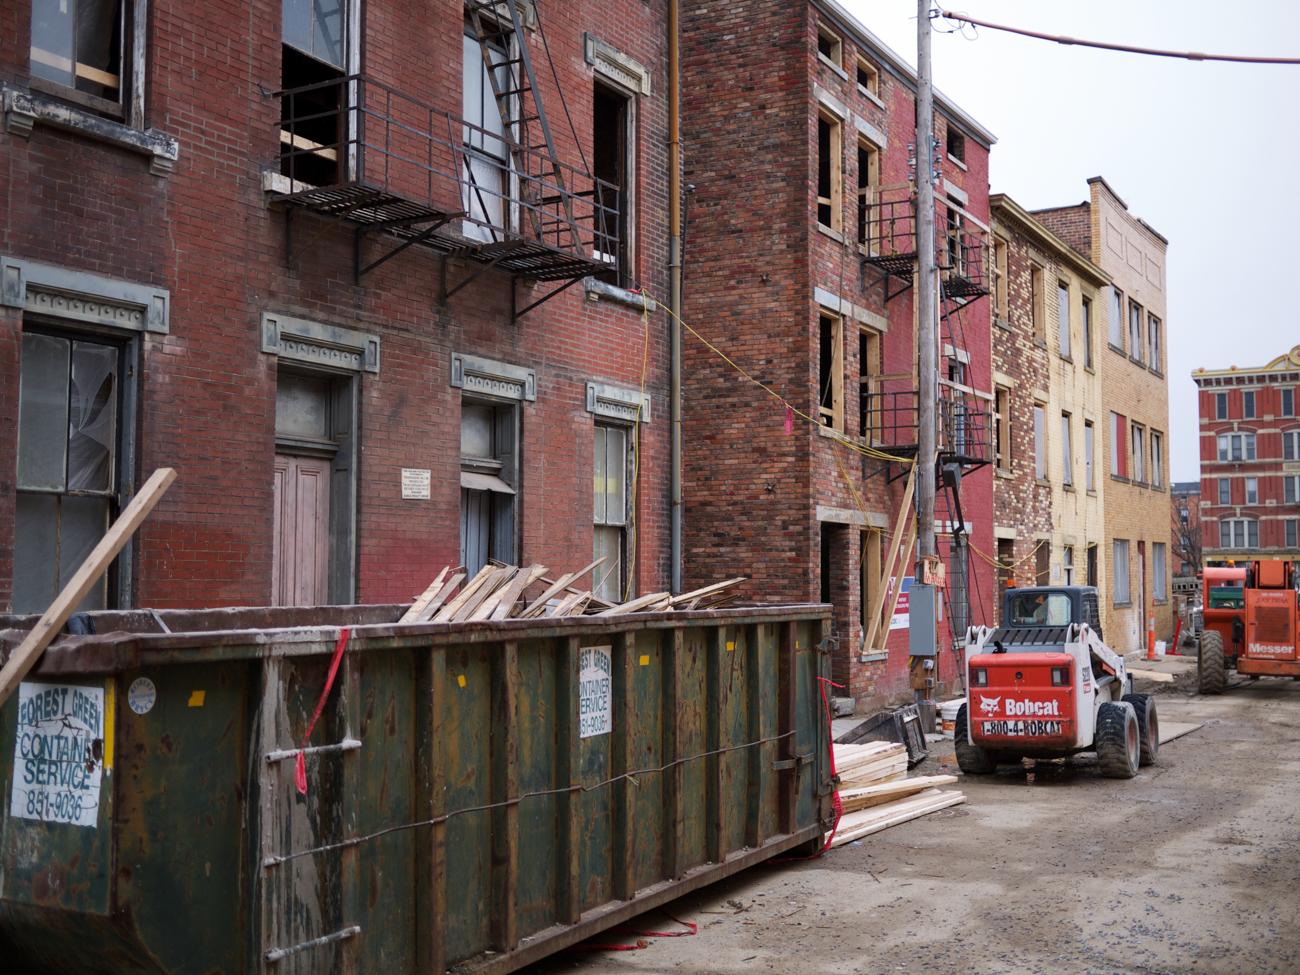 [BEFORE] LOCATION: Mercer Street, looking west between Vine and Walnut Streets at Rodney Alley (Over-the-Rhine) / IMAGE: Travis Estell